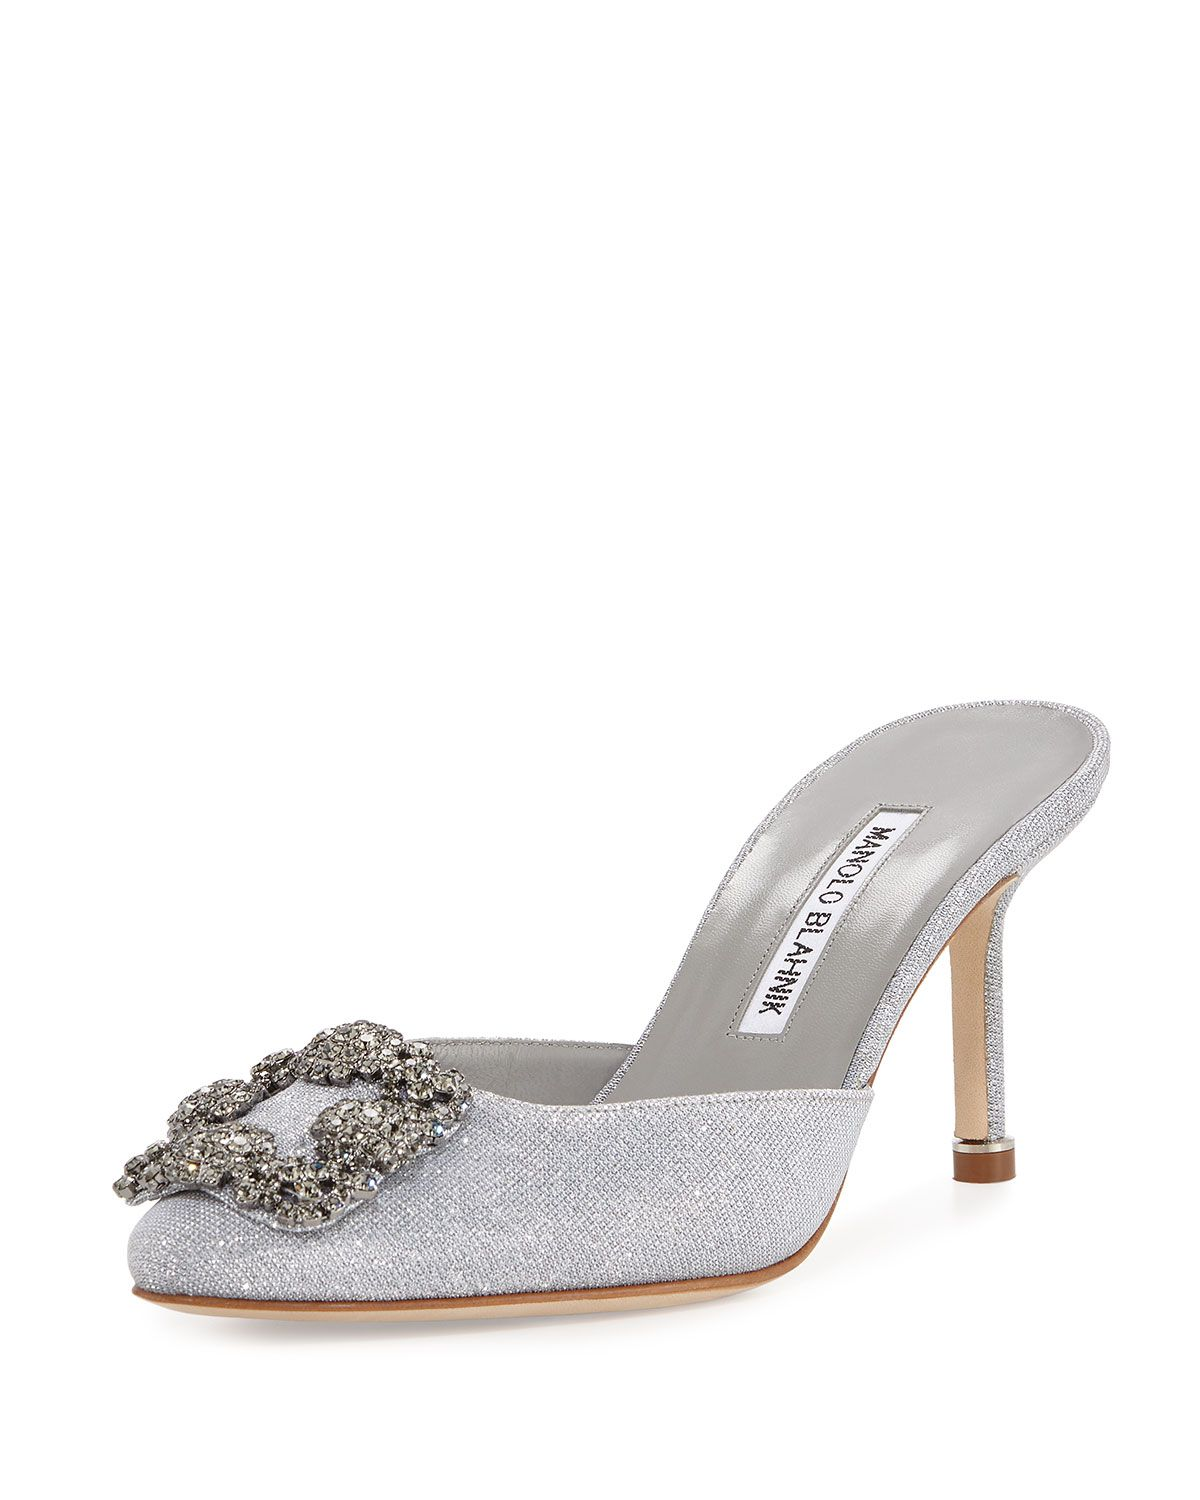 1ecd5179c2 Hangisi Glittered Mule Pump Silver | shoes Manolo Blahnik | Manolo ...